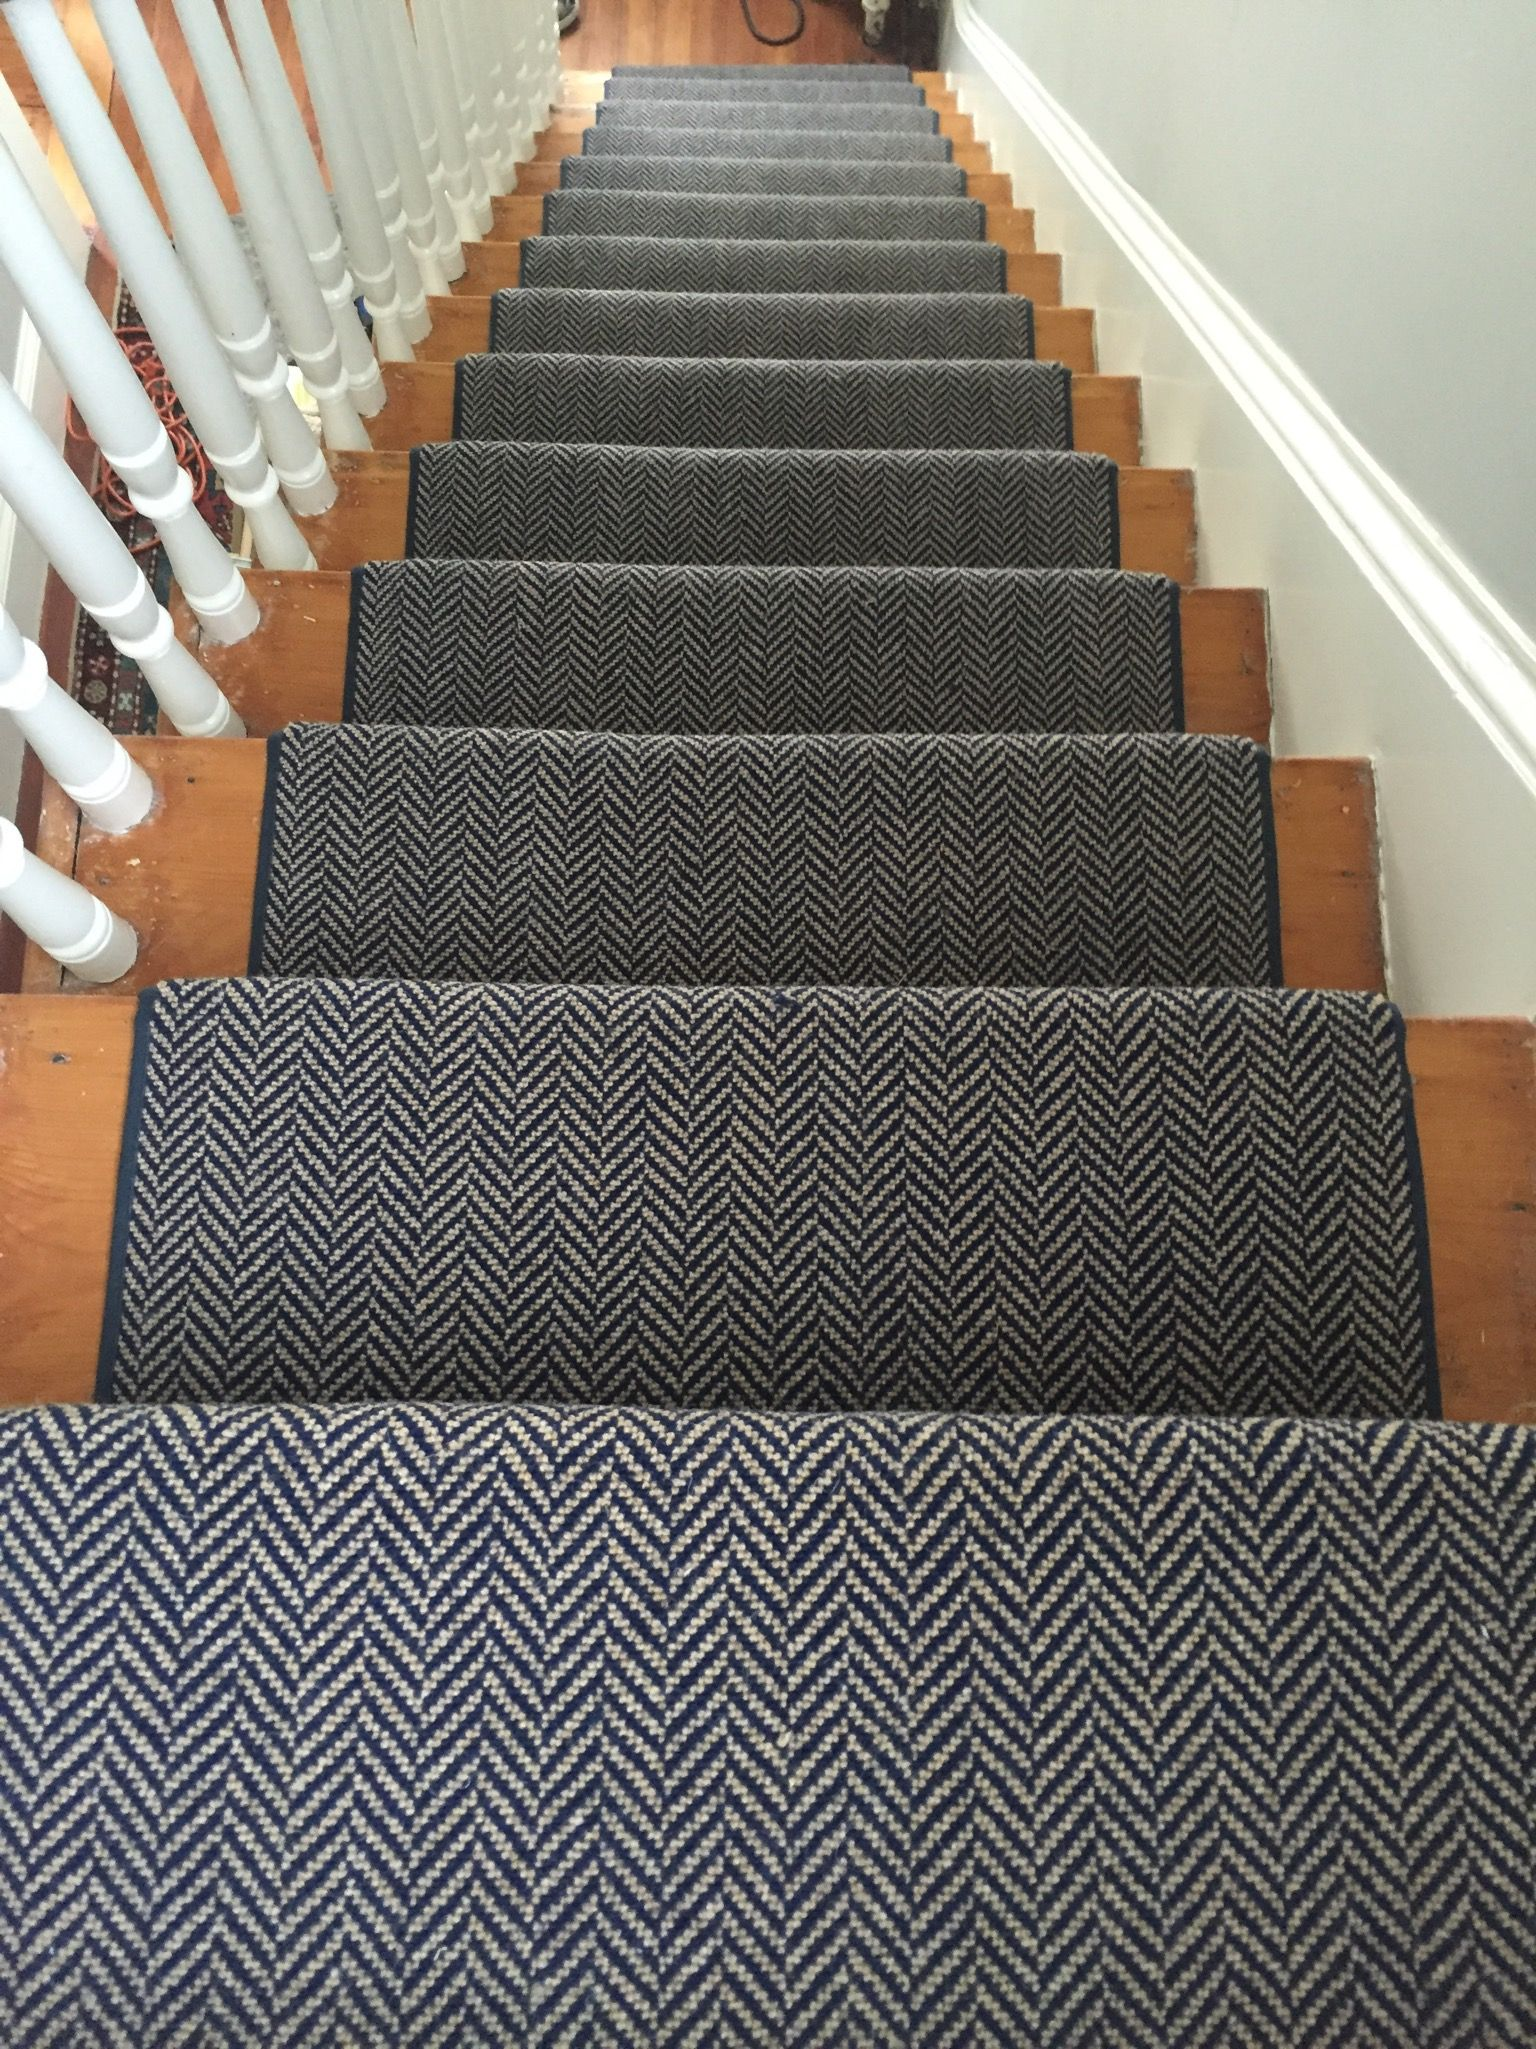 Best Custom Rug Fabrication In 2020 Carpet Stairs Rugs On 400 x 300